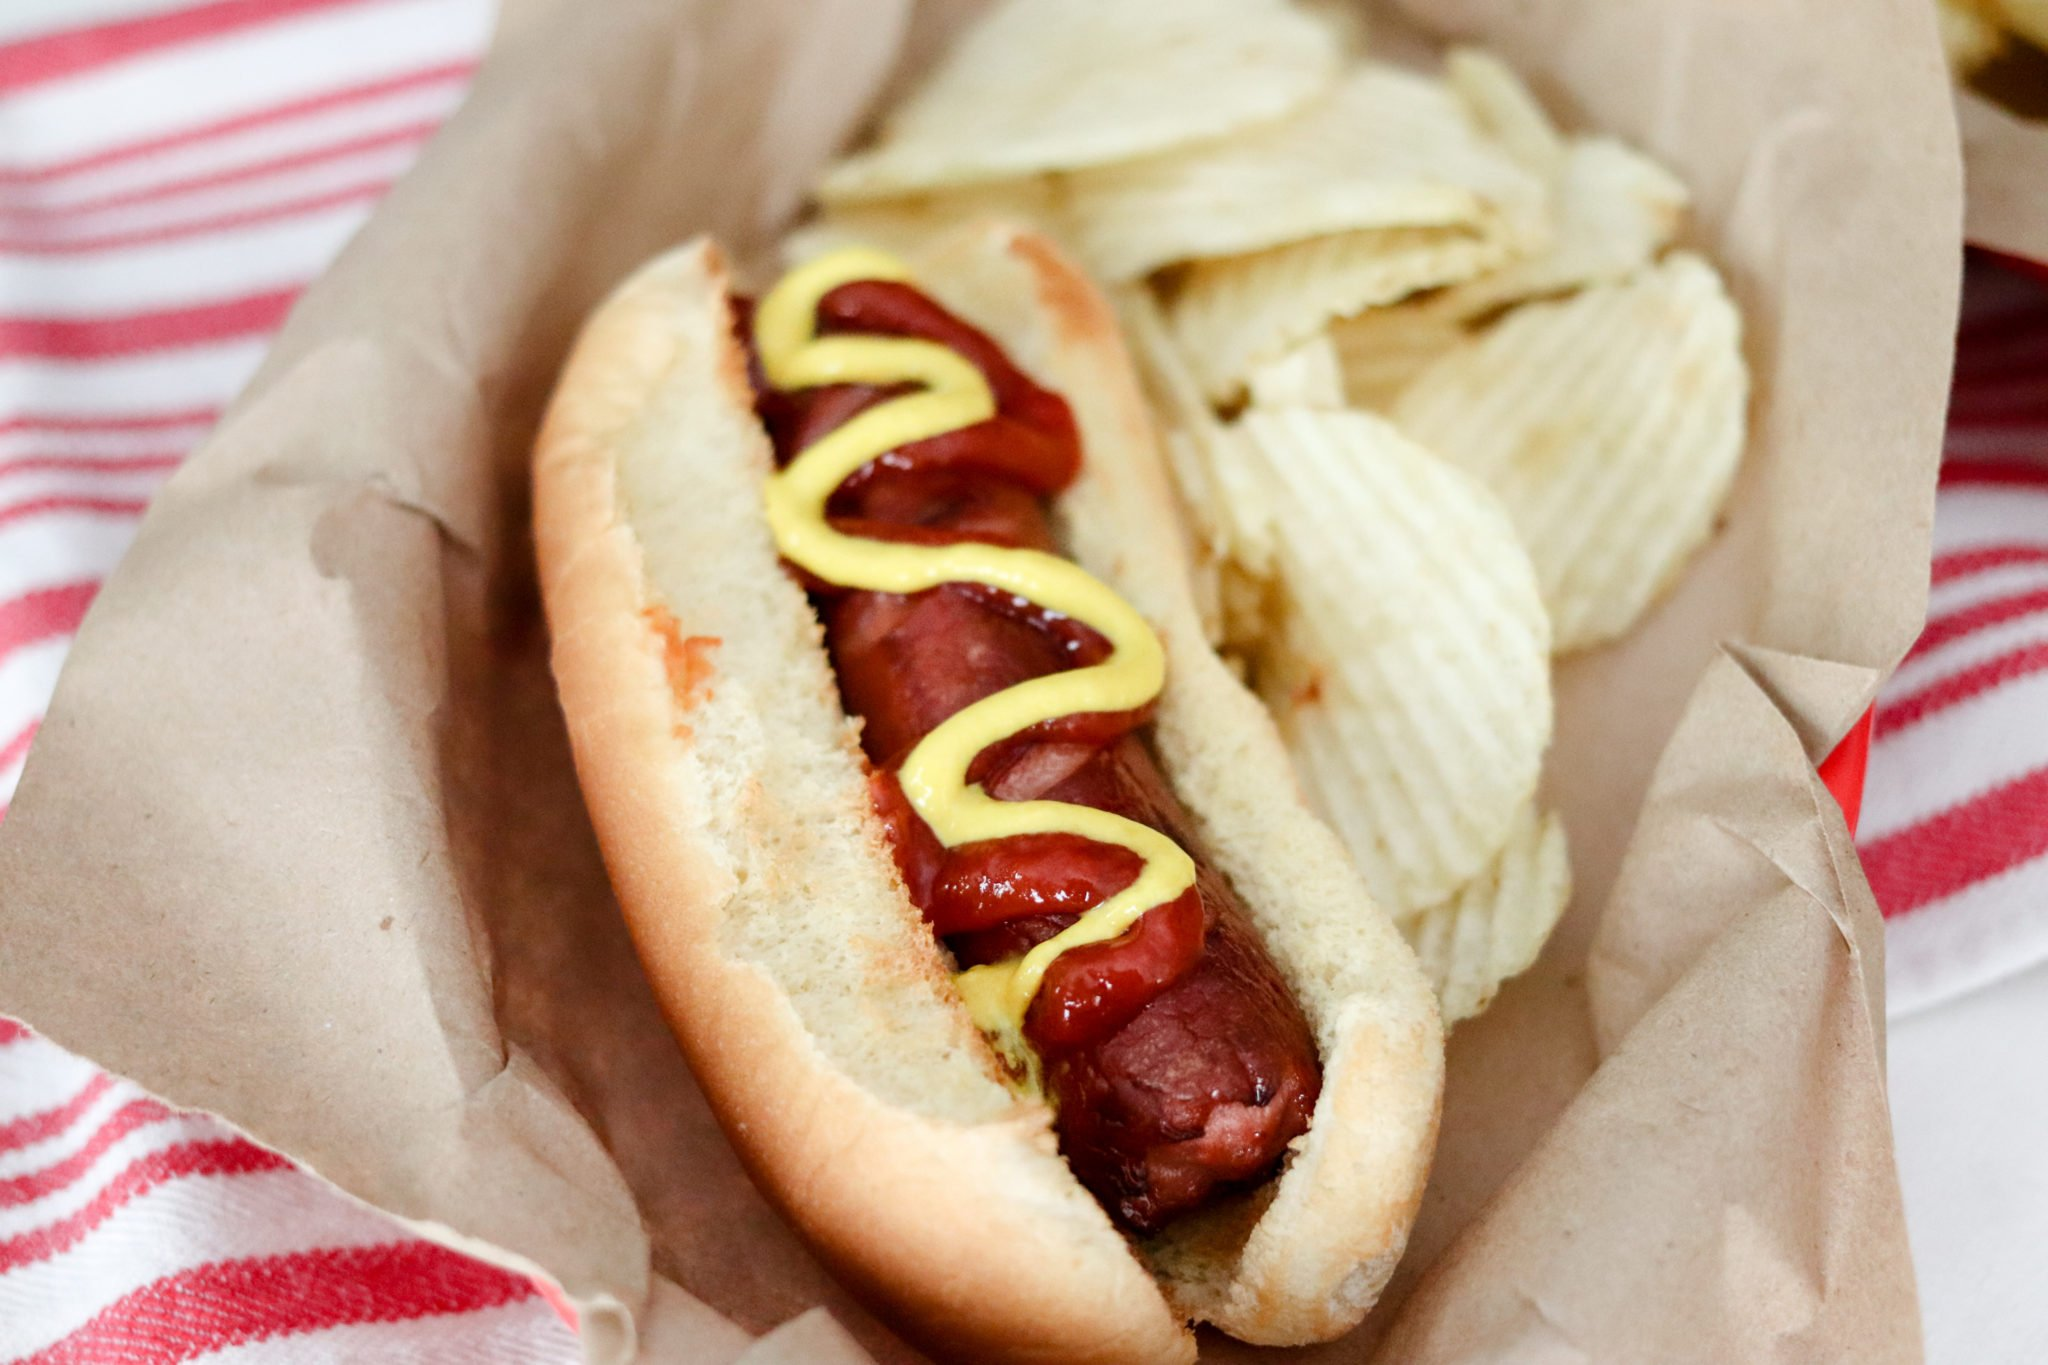 Cooking hot dogs has never been easier than in the Air Fryer! Air Fryer Hot Dogs are perfectly 'grilled' in no time and with hardly any effort